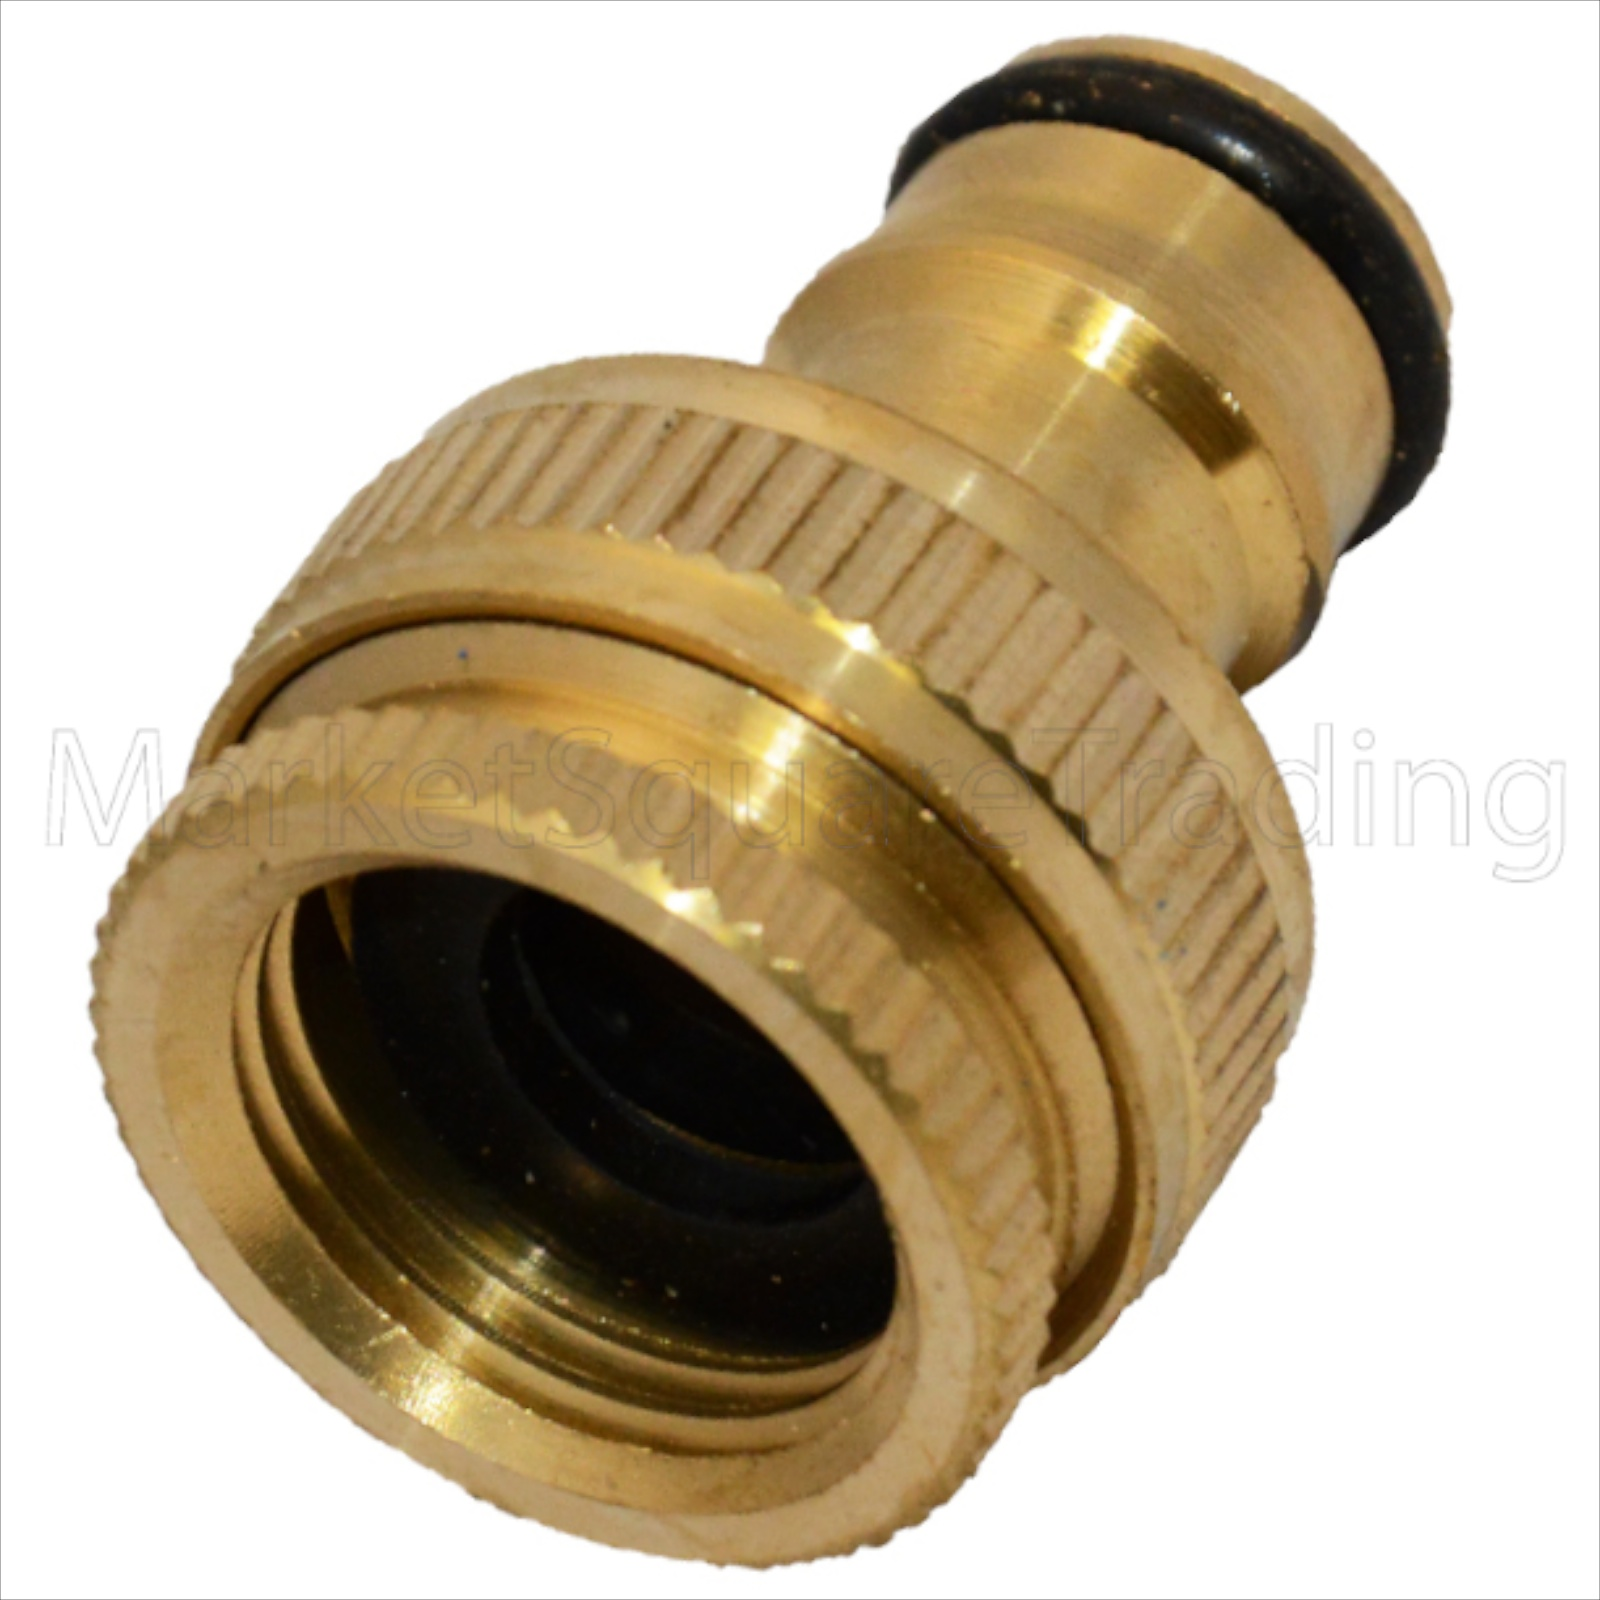 brass hosepipe connector quick adaptor outside tap kit fittings